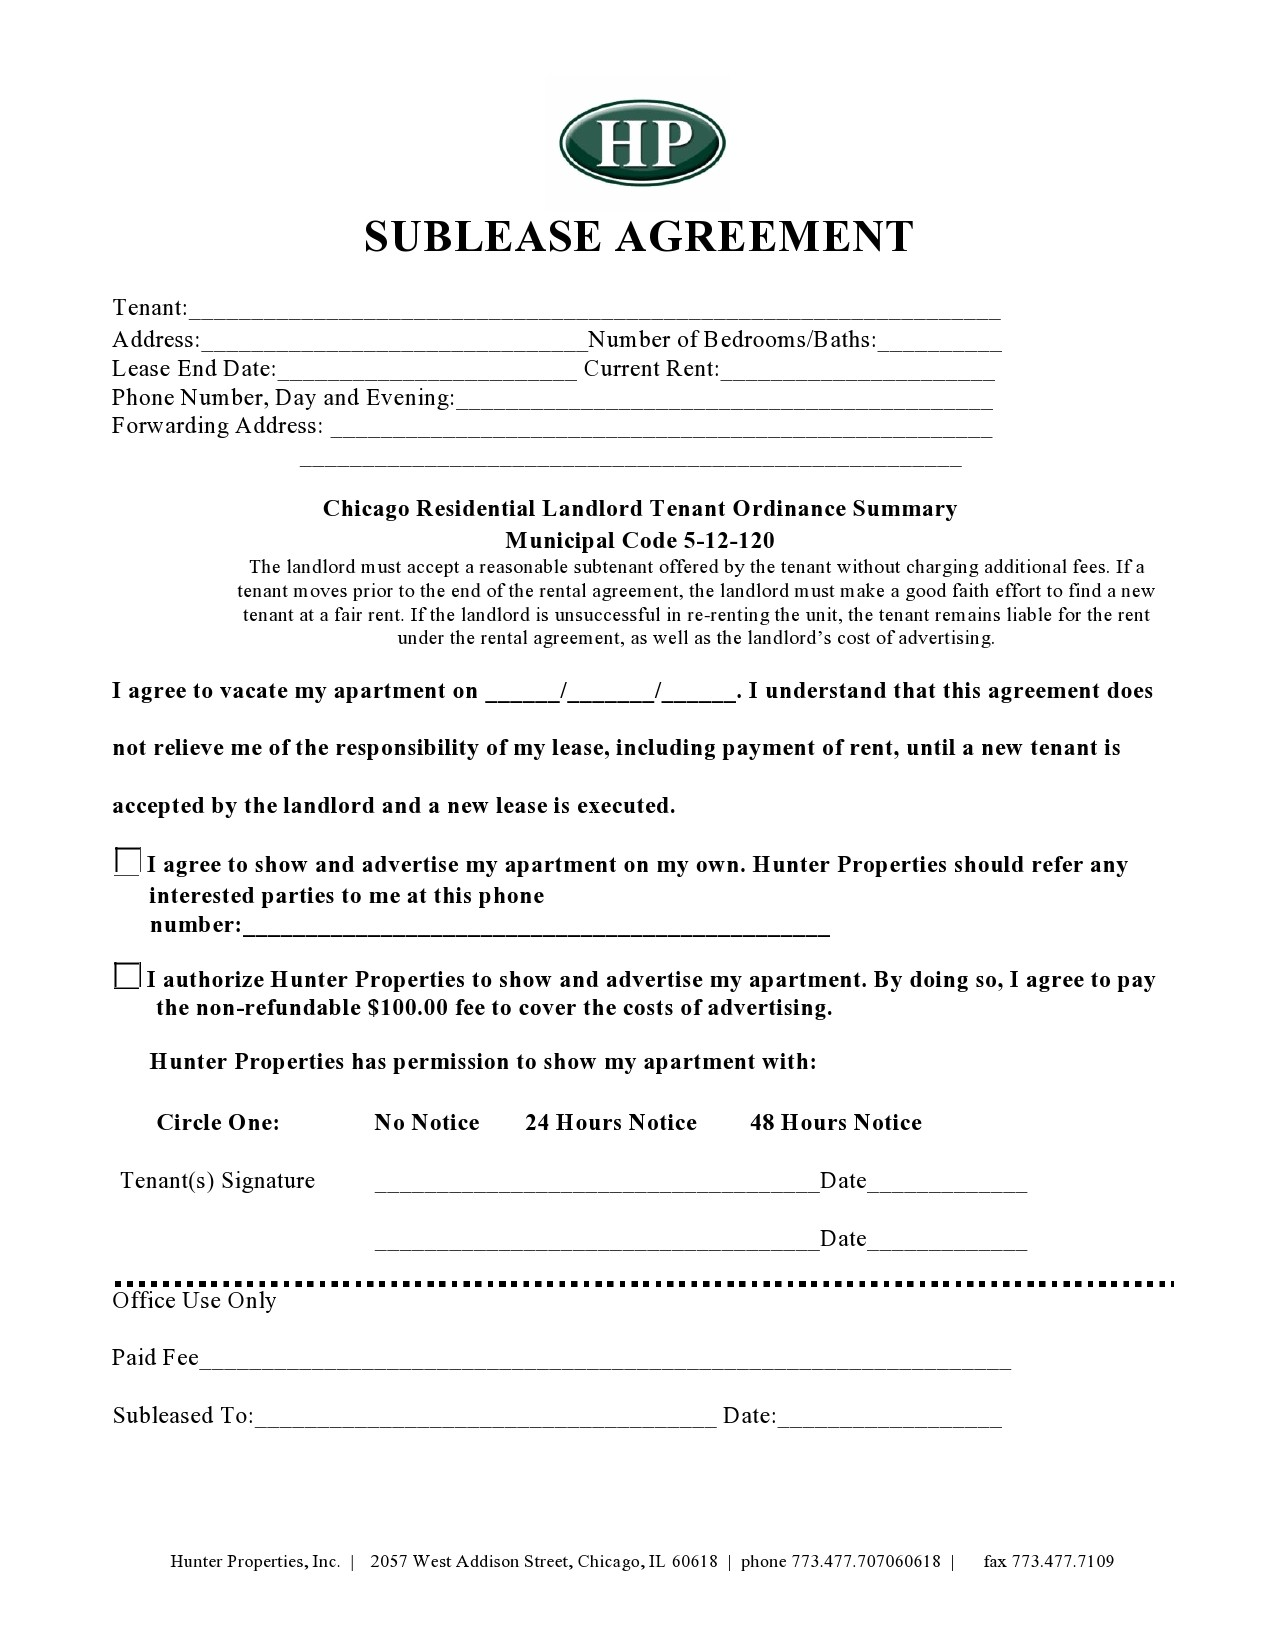 Free residential sublease agreement 05